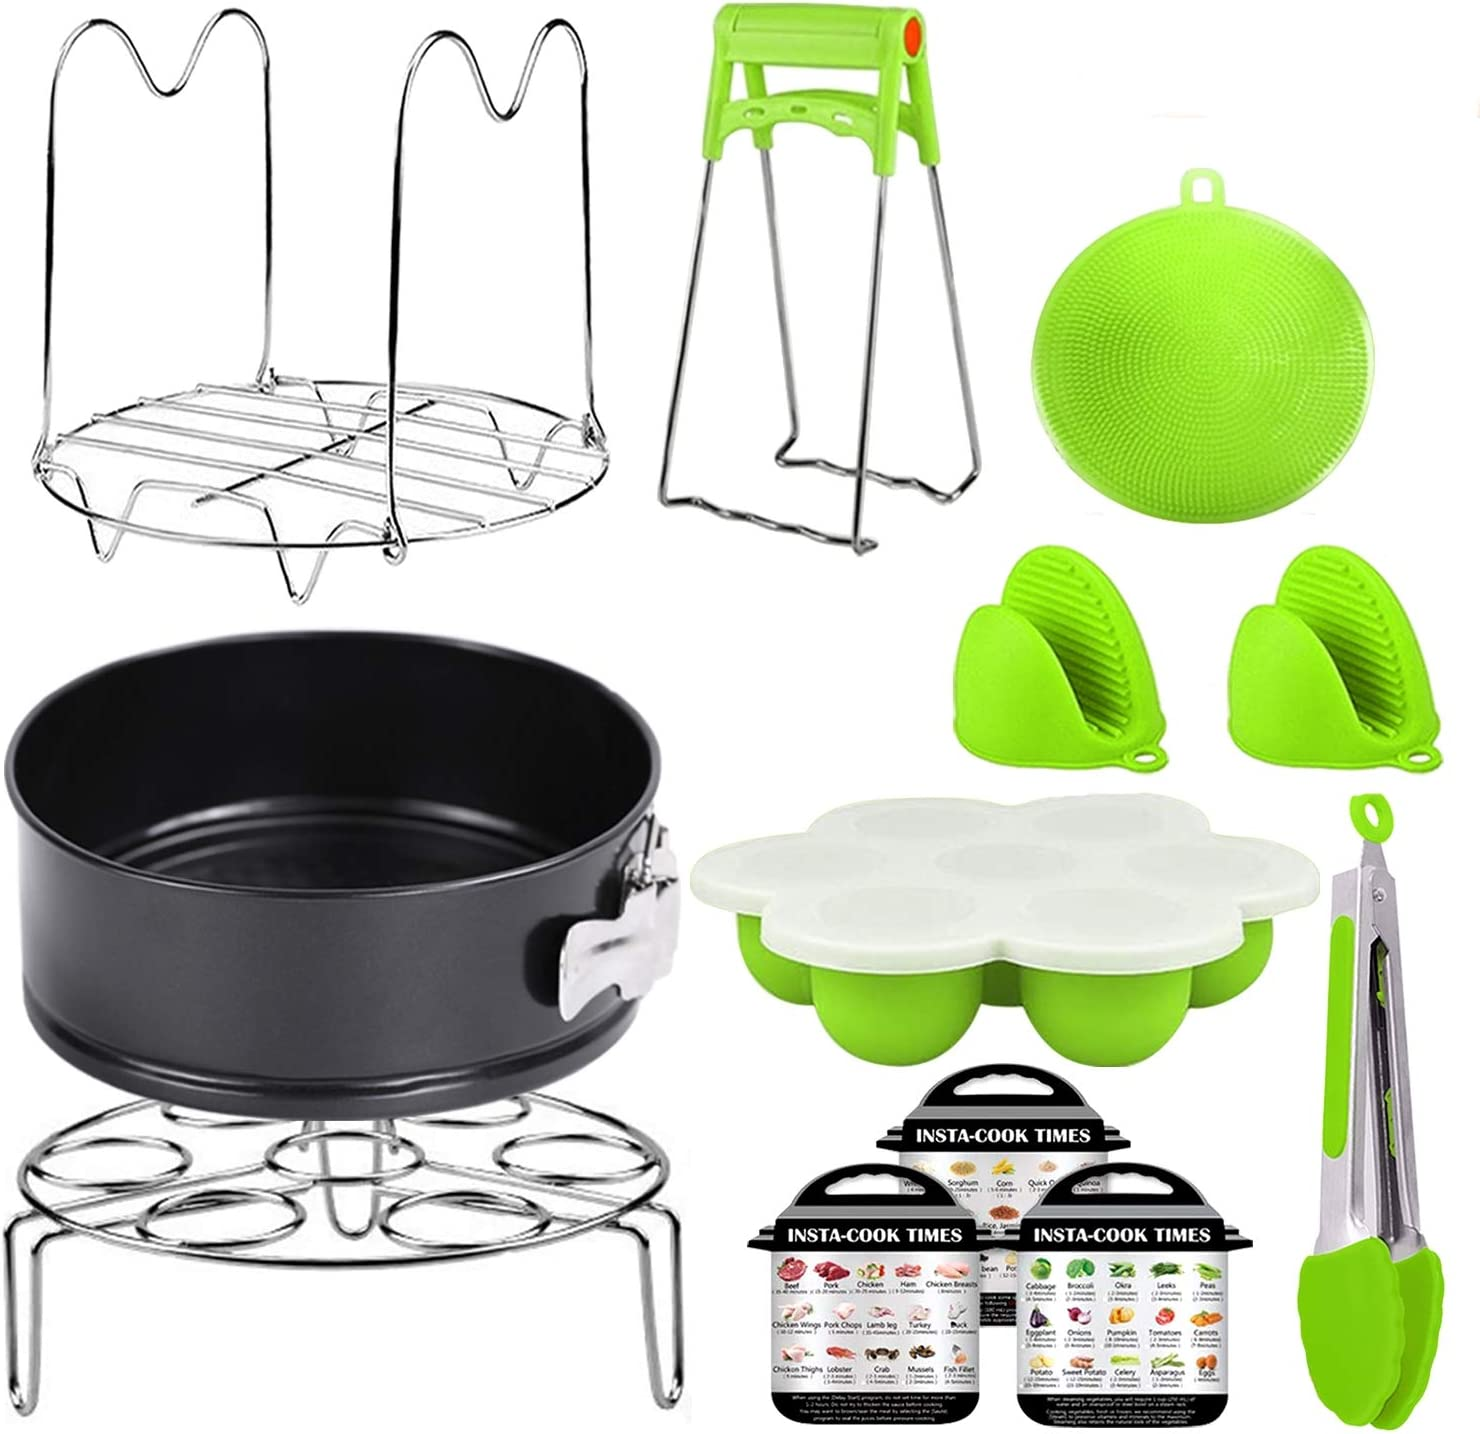 Accesseries for Instant Pot 6, 8 Quarter Only for Pressure Cooker Accessories 6 8 QT Set Compatible with Instapot Kit, Springform Pan, Steamer Rack Basket,Trivet with Long Handle, Egg Bites Mold